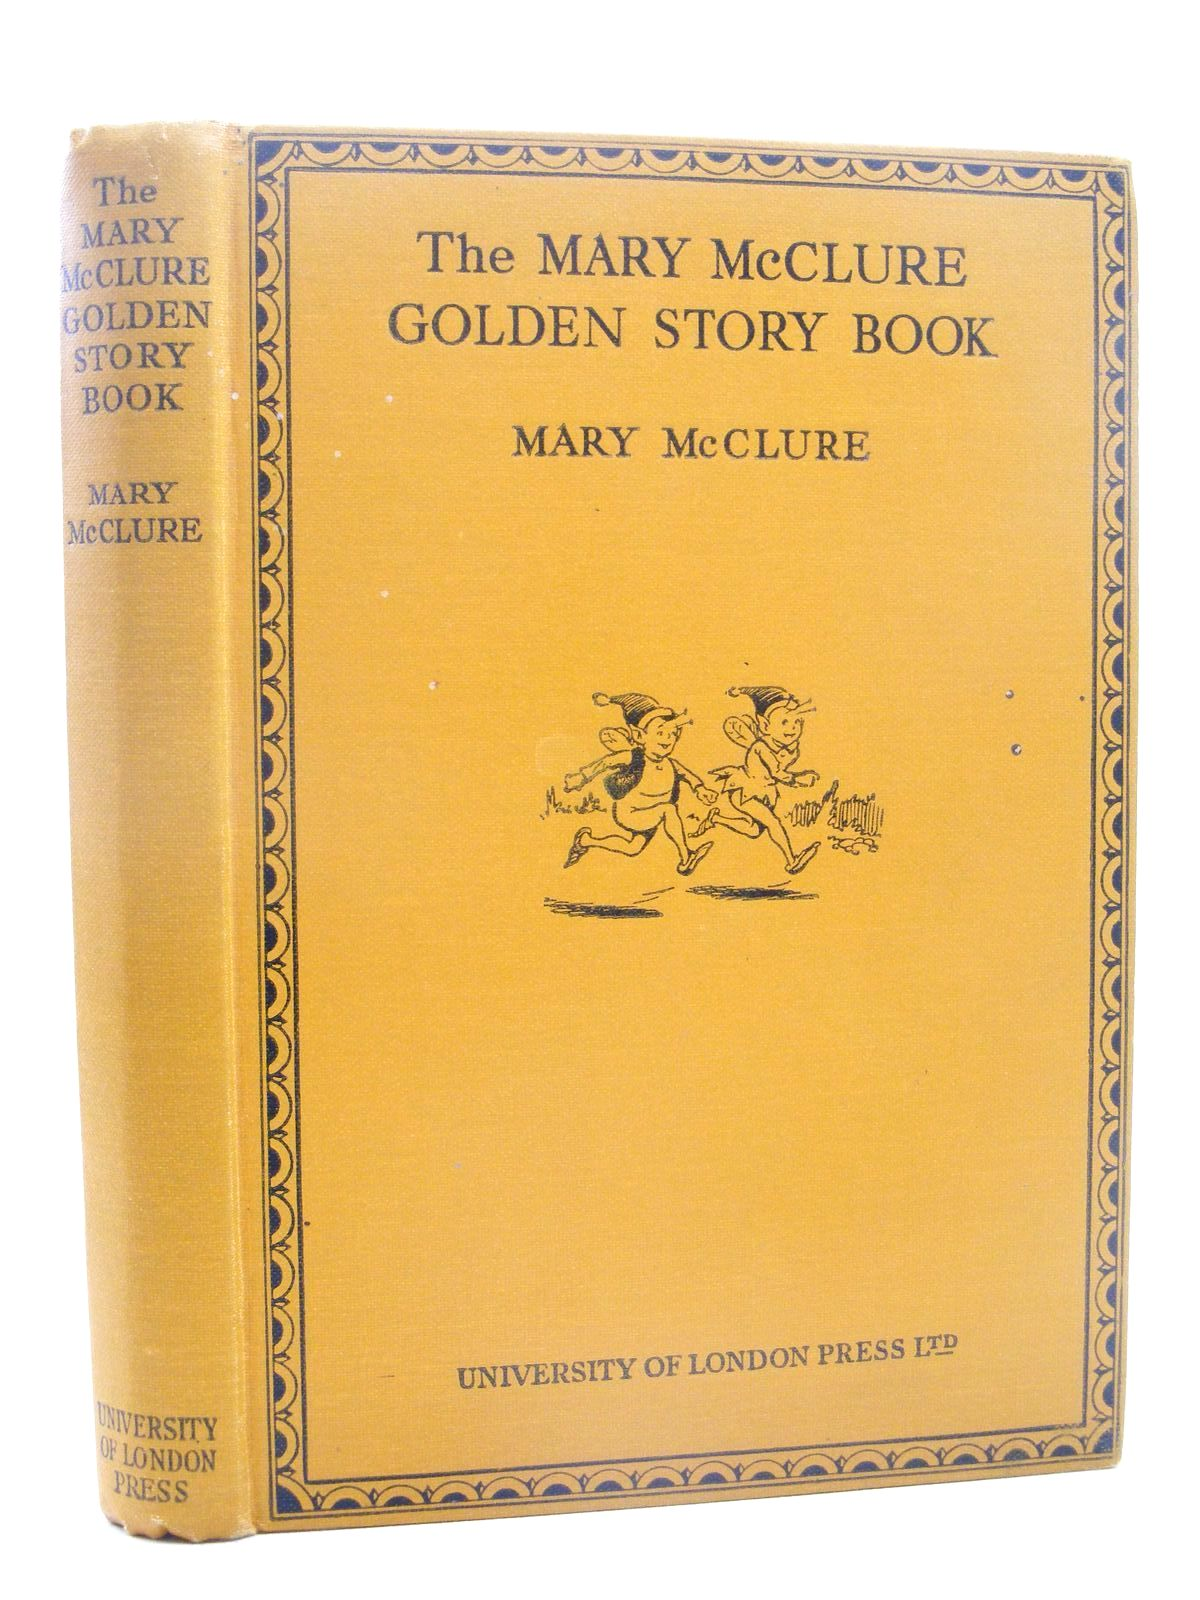 Photo of THE MARY MCCLURE GOLDEN STORY BOOK written by McClure, Mary illustrated by Thack, published by University of London Press Ltd. (STOCK CODE: 1317305)  for sale by Stella & Rose's Books